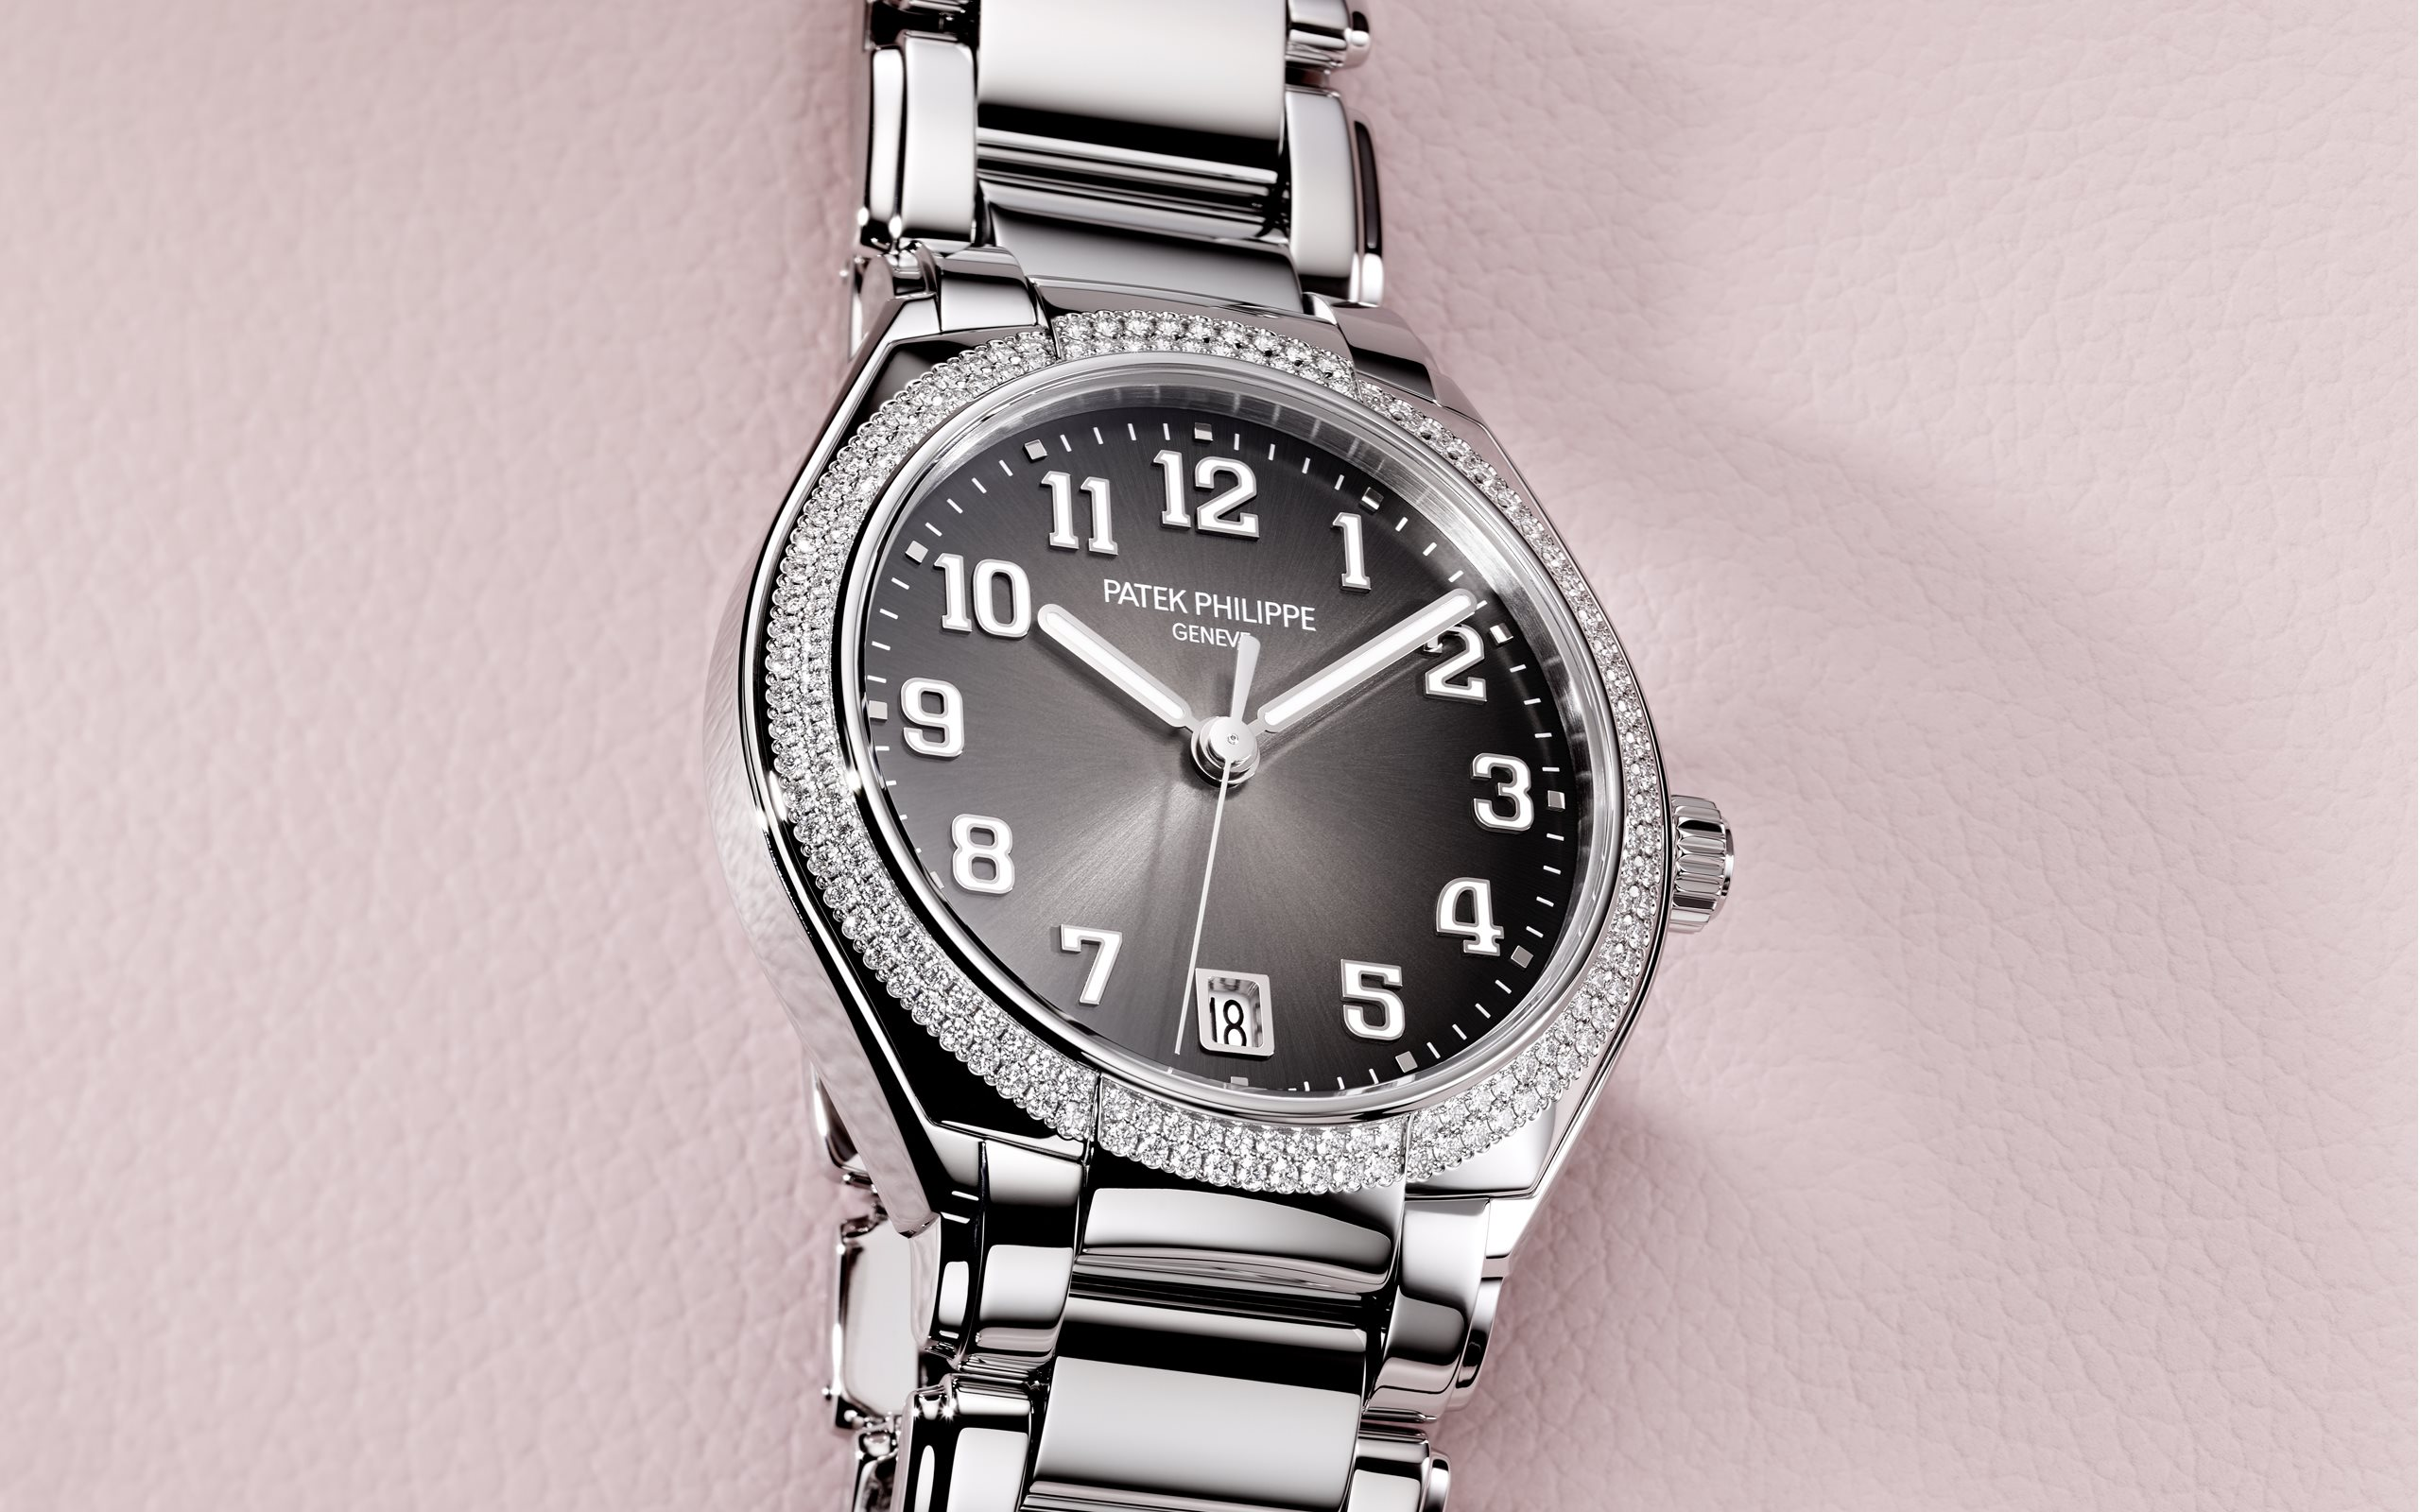 19ce40c8162 A Watch For All Occasions - Patek Philippe s Twenty~4 Automatic ...